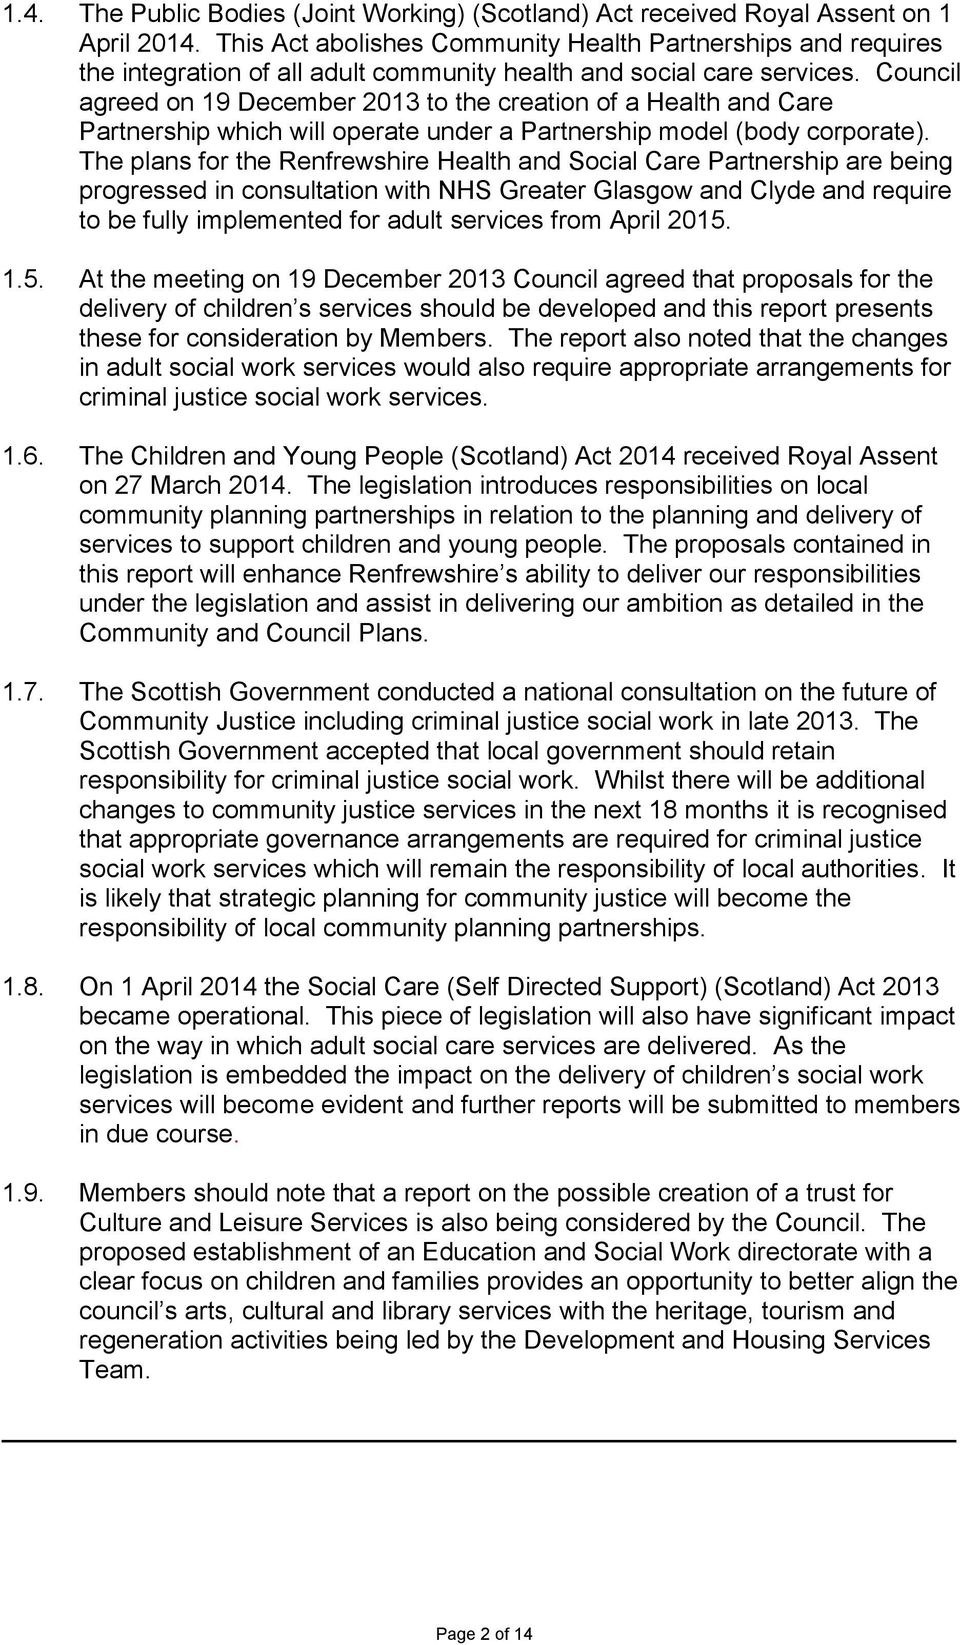 Council agreed on 19 December 2013 to the creation of a Health and Care Partnership which will operate under a Partnership model (body corporate).